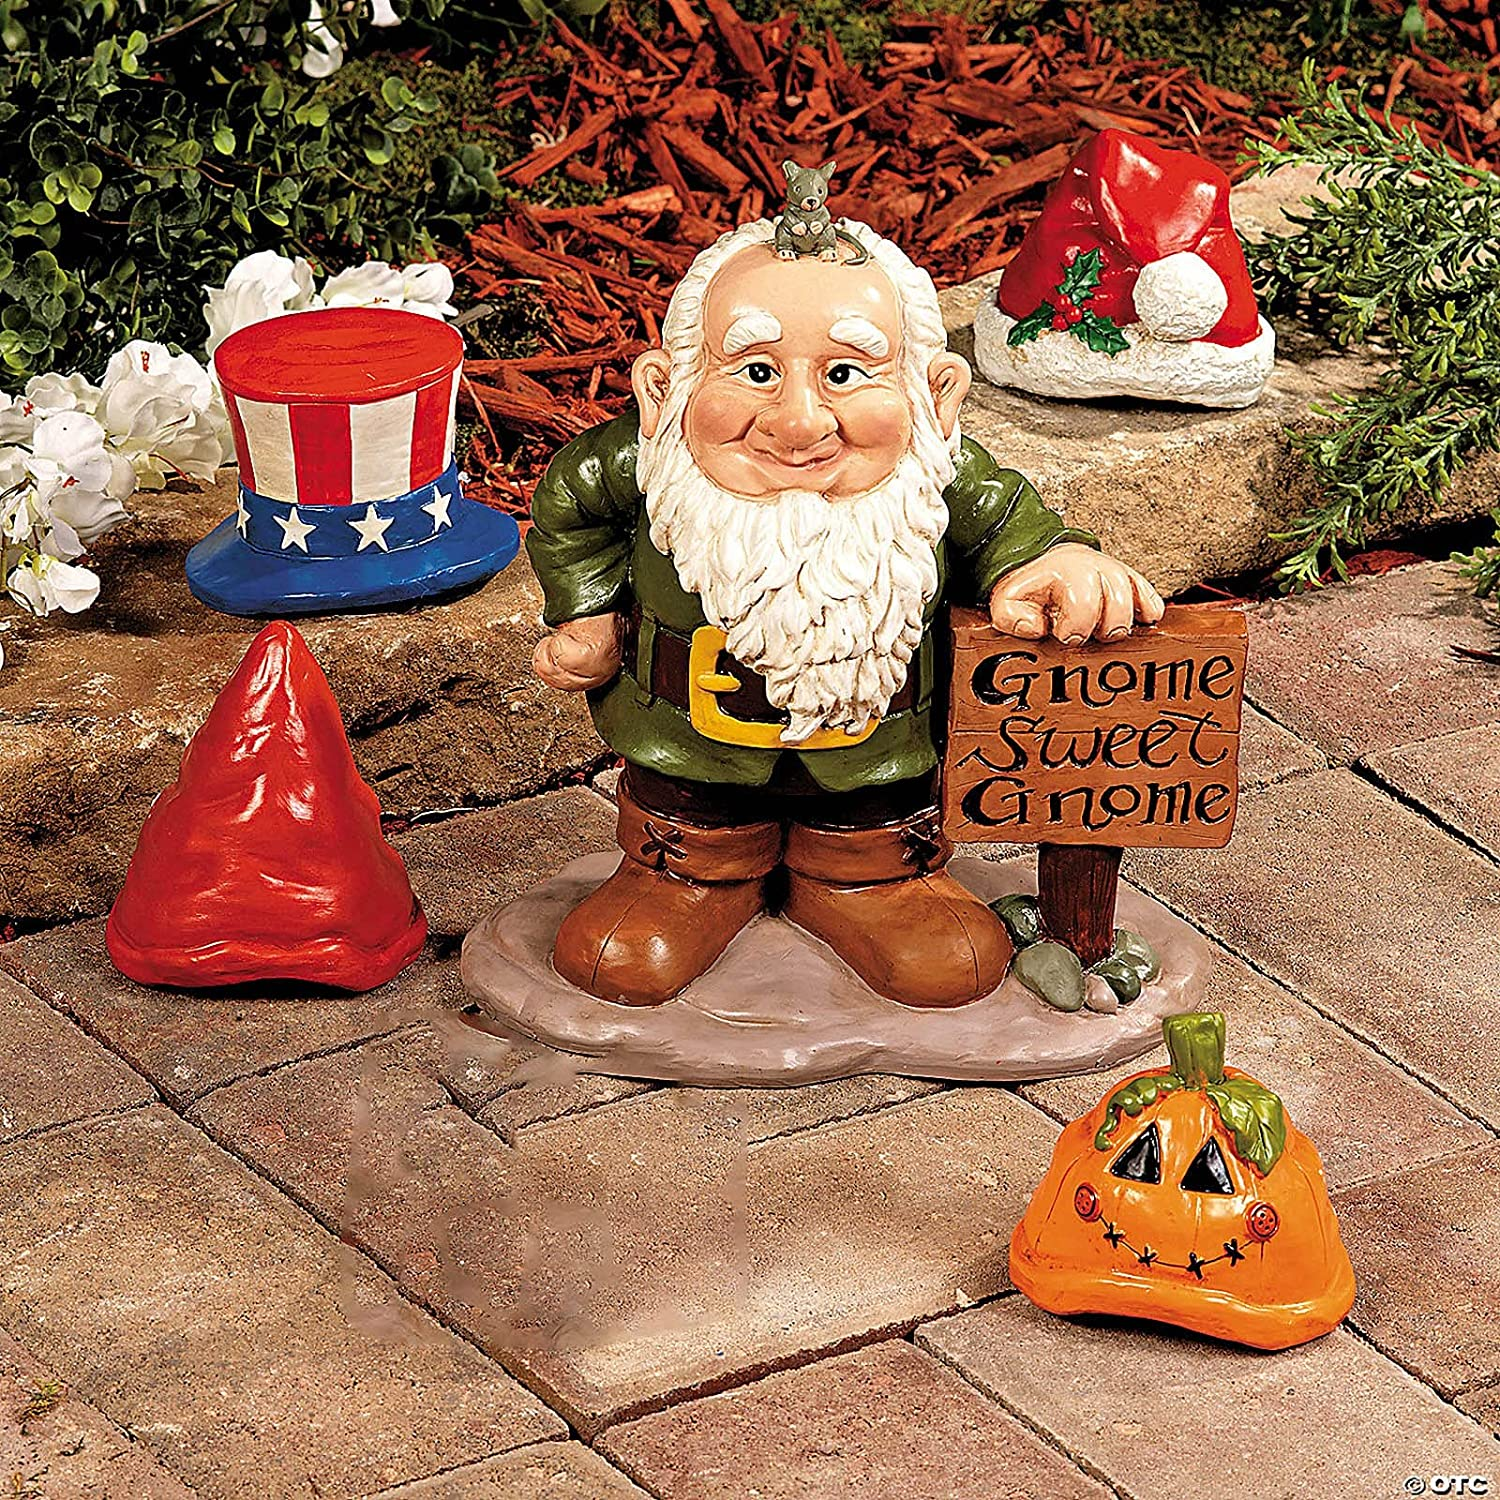 Garden Gnome Statue, Gnome Greeter with 4PC Interchangeable Hats for Christmas, Halloween, Easter, Independence Day Garden Statues Decoration Resin Gnome Figurine for Patio Yard Lawn Porch Crafts